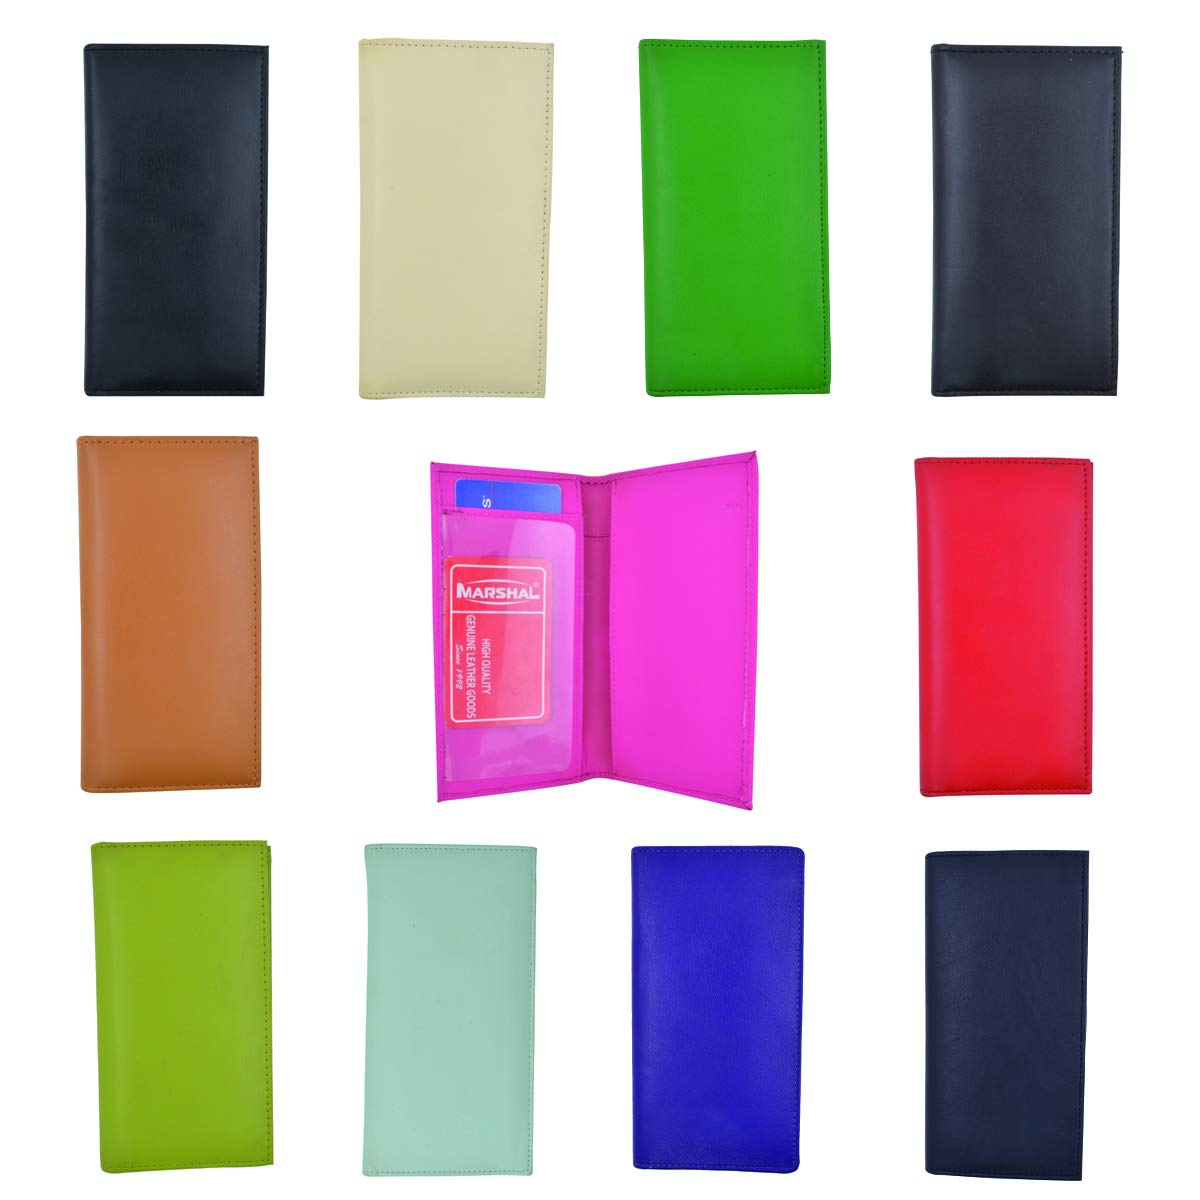 Wholesale Lots of Basic PU Leather Checkbook Covers ASSORTED COLORS by Marshal (24pcs) by Marshal